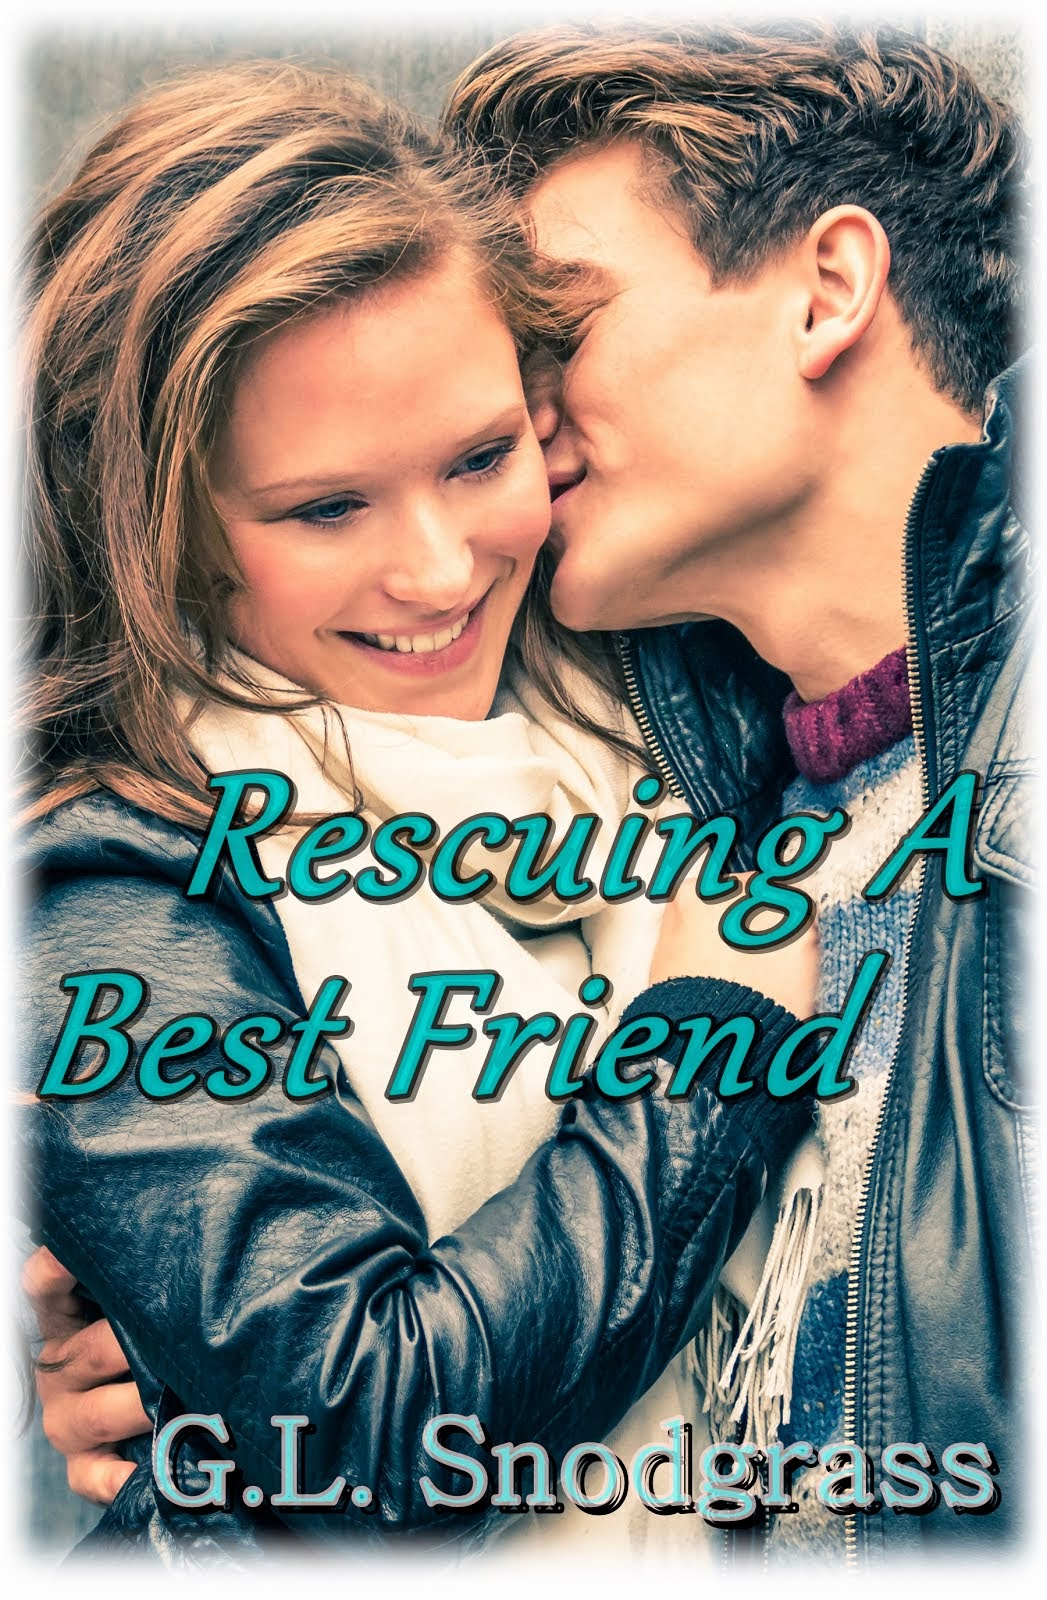 Rescuing a Best Friend